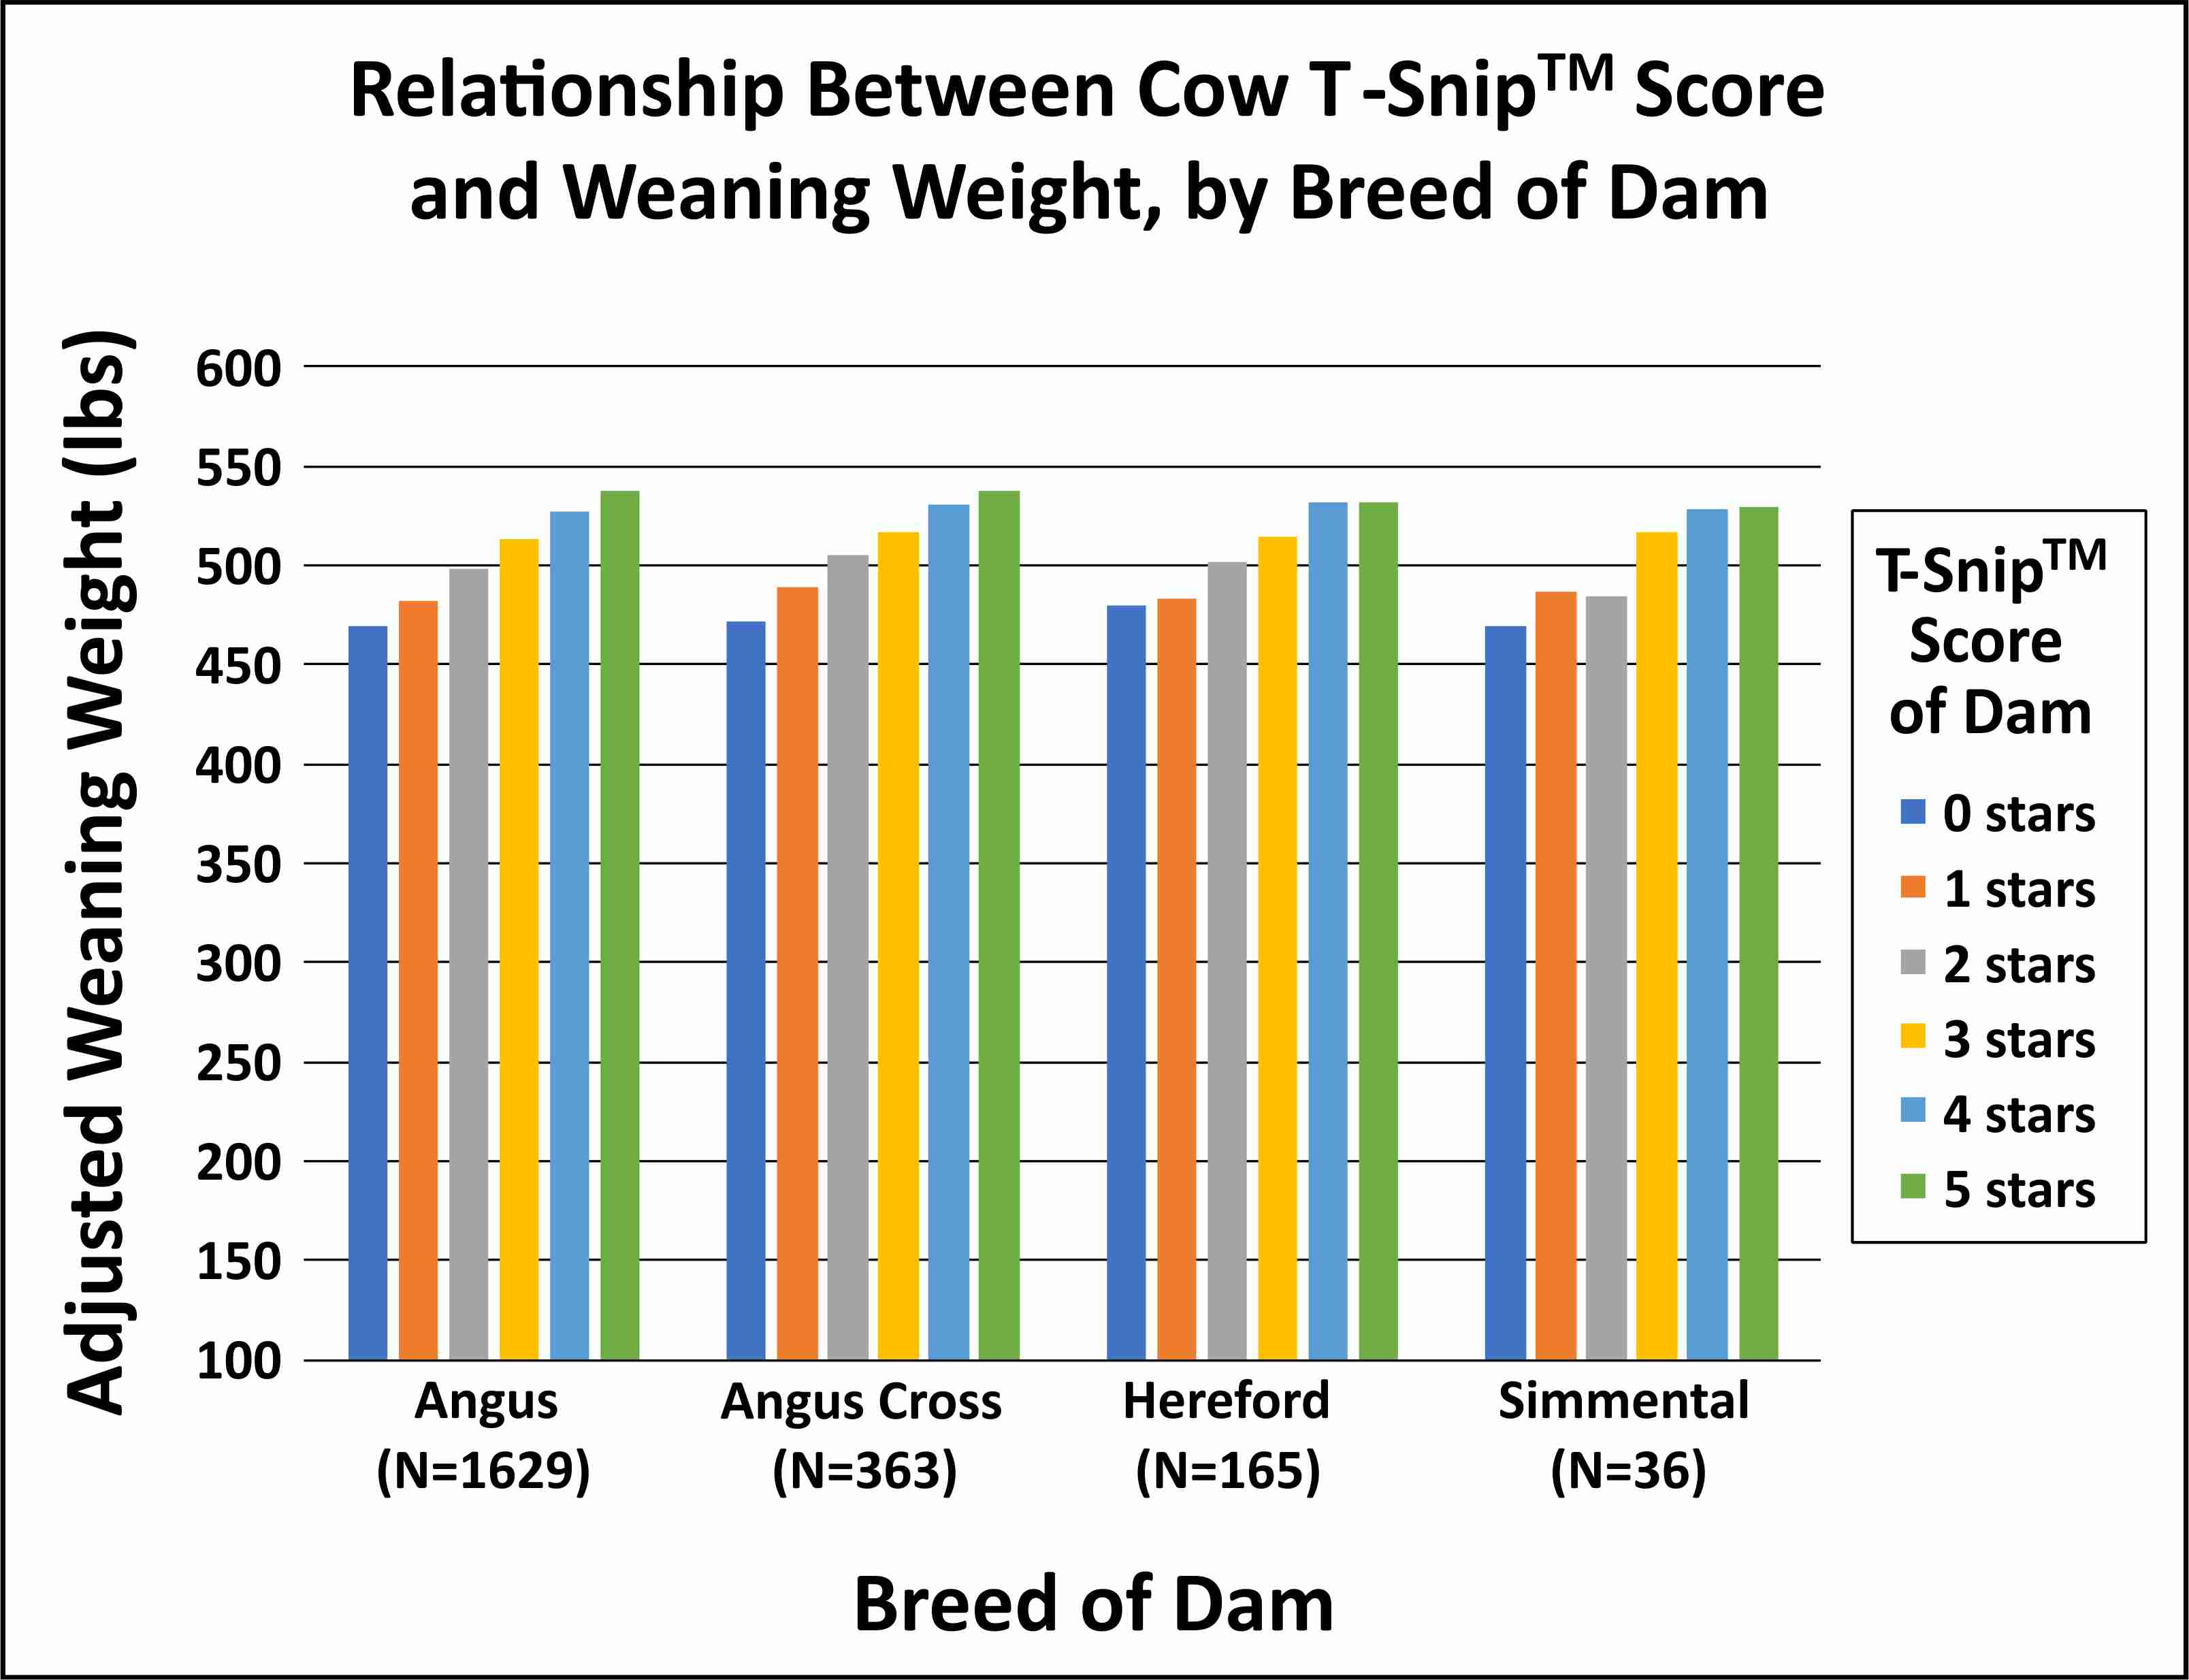 Relationship between cow T-Snip™ score and weaning weight, by breed of dam